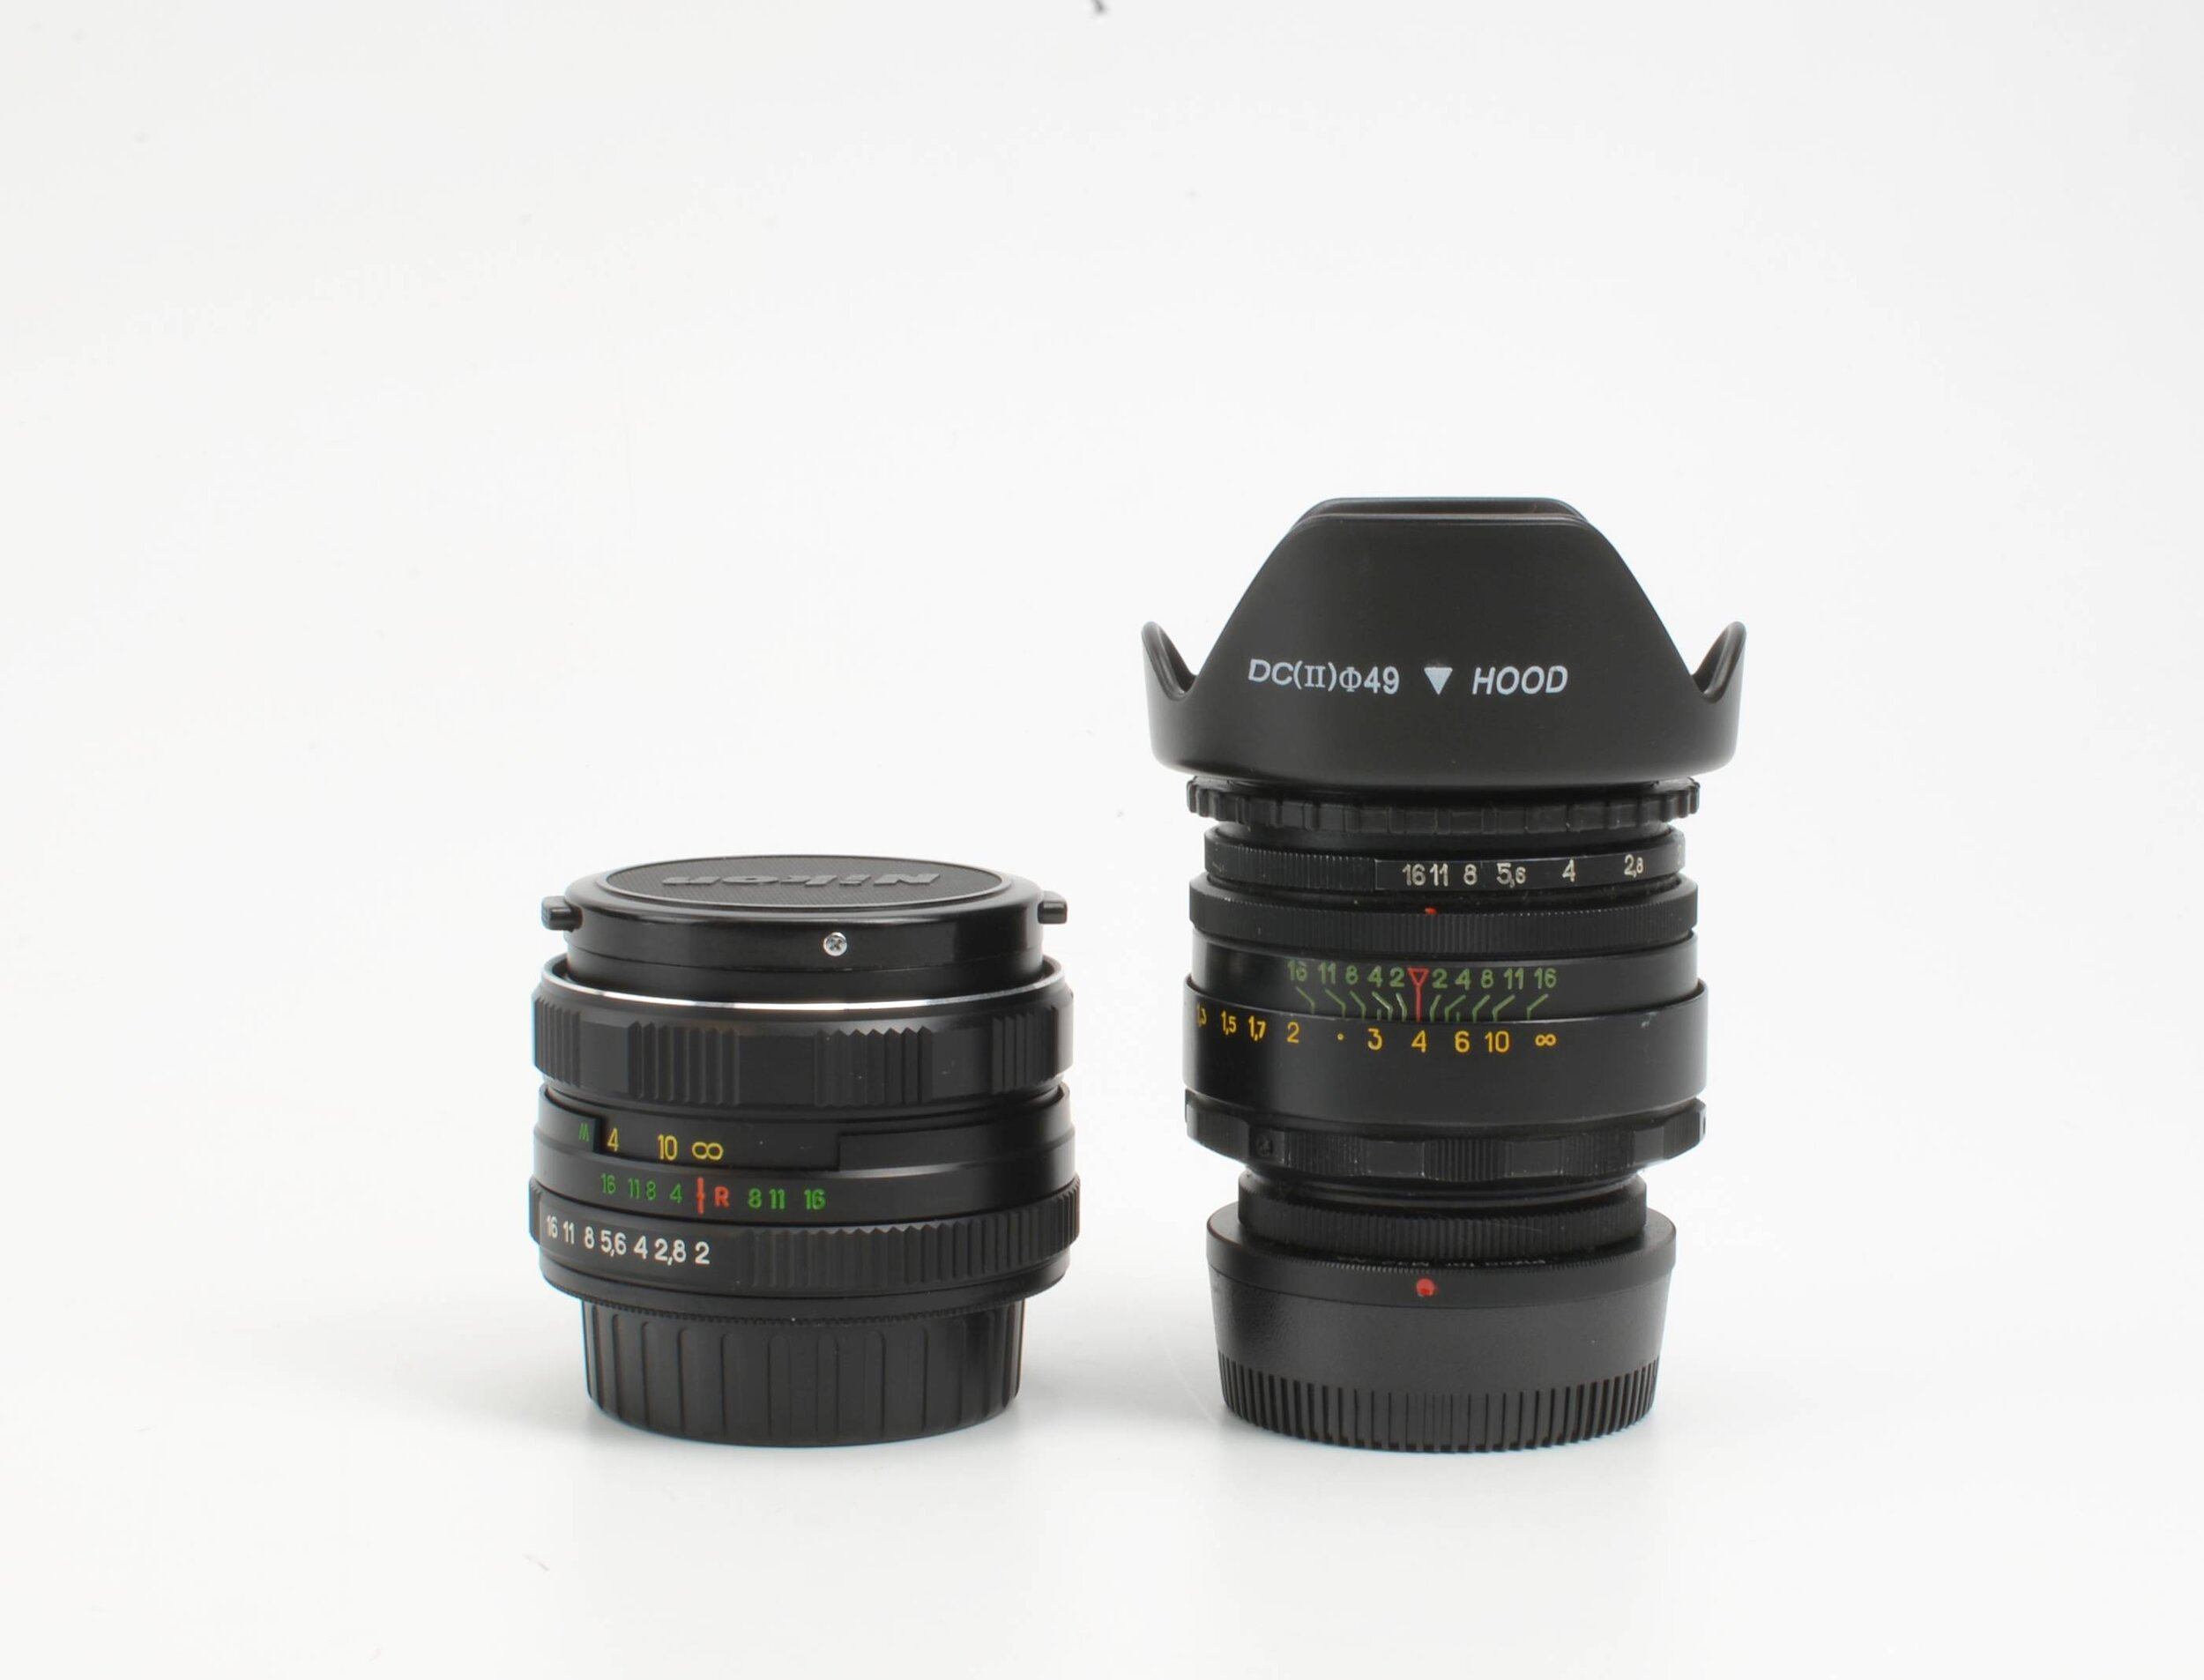 Zenit Helios Lenses - M44-7 on the left, M44-2 on the right.